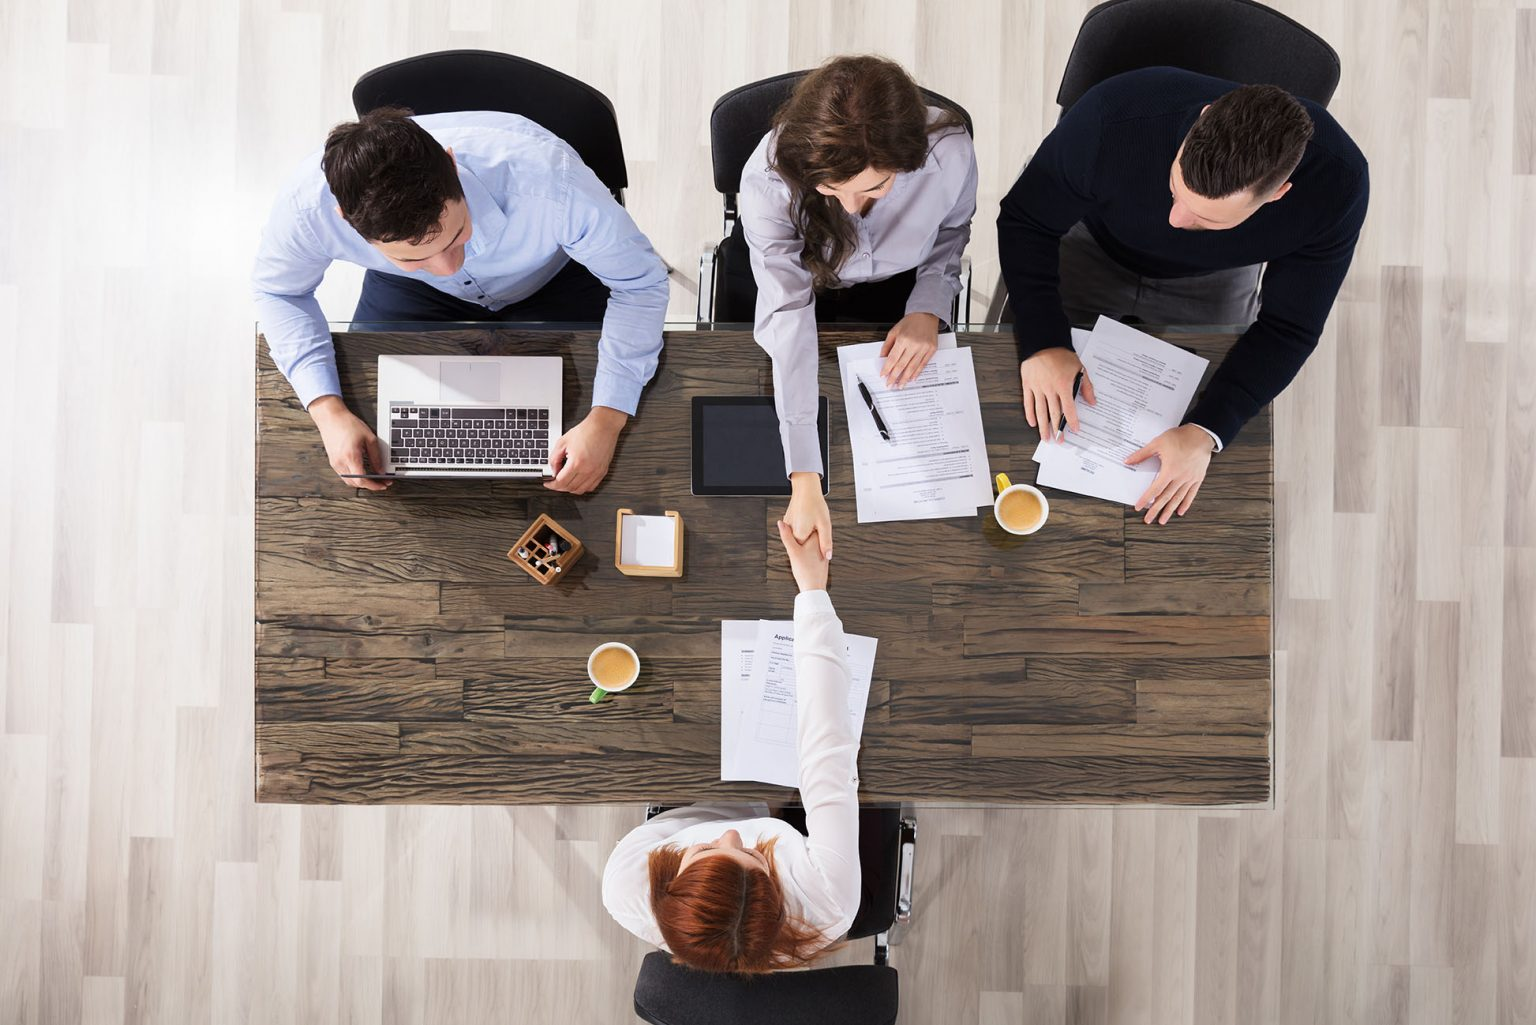 3 interviewers using their interview panel training in a real life interview